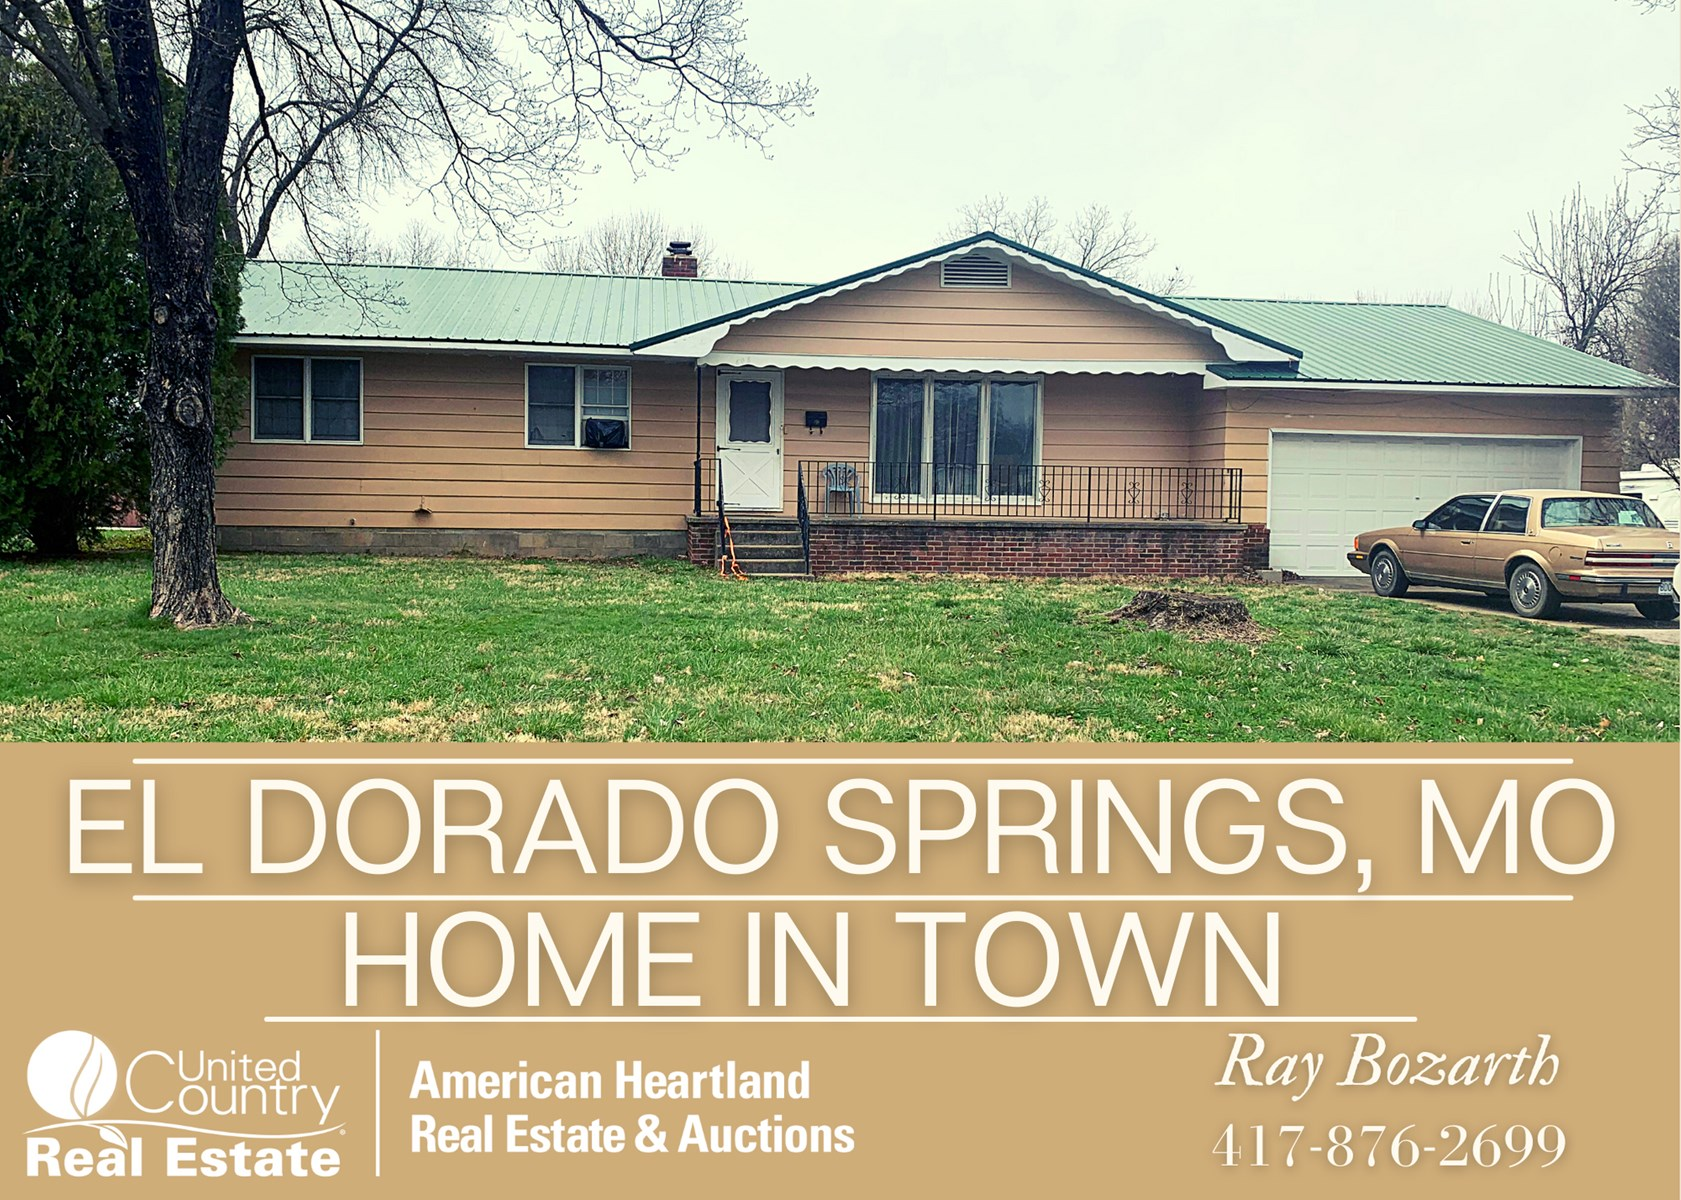 3 Bedroom Home on 3 City Lots in SW Mo.